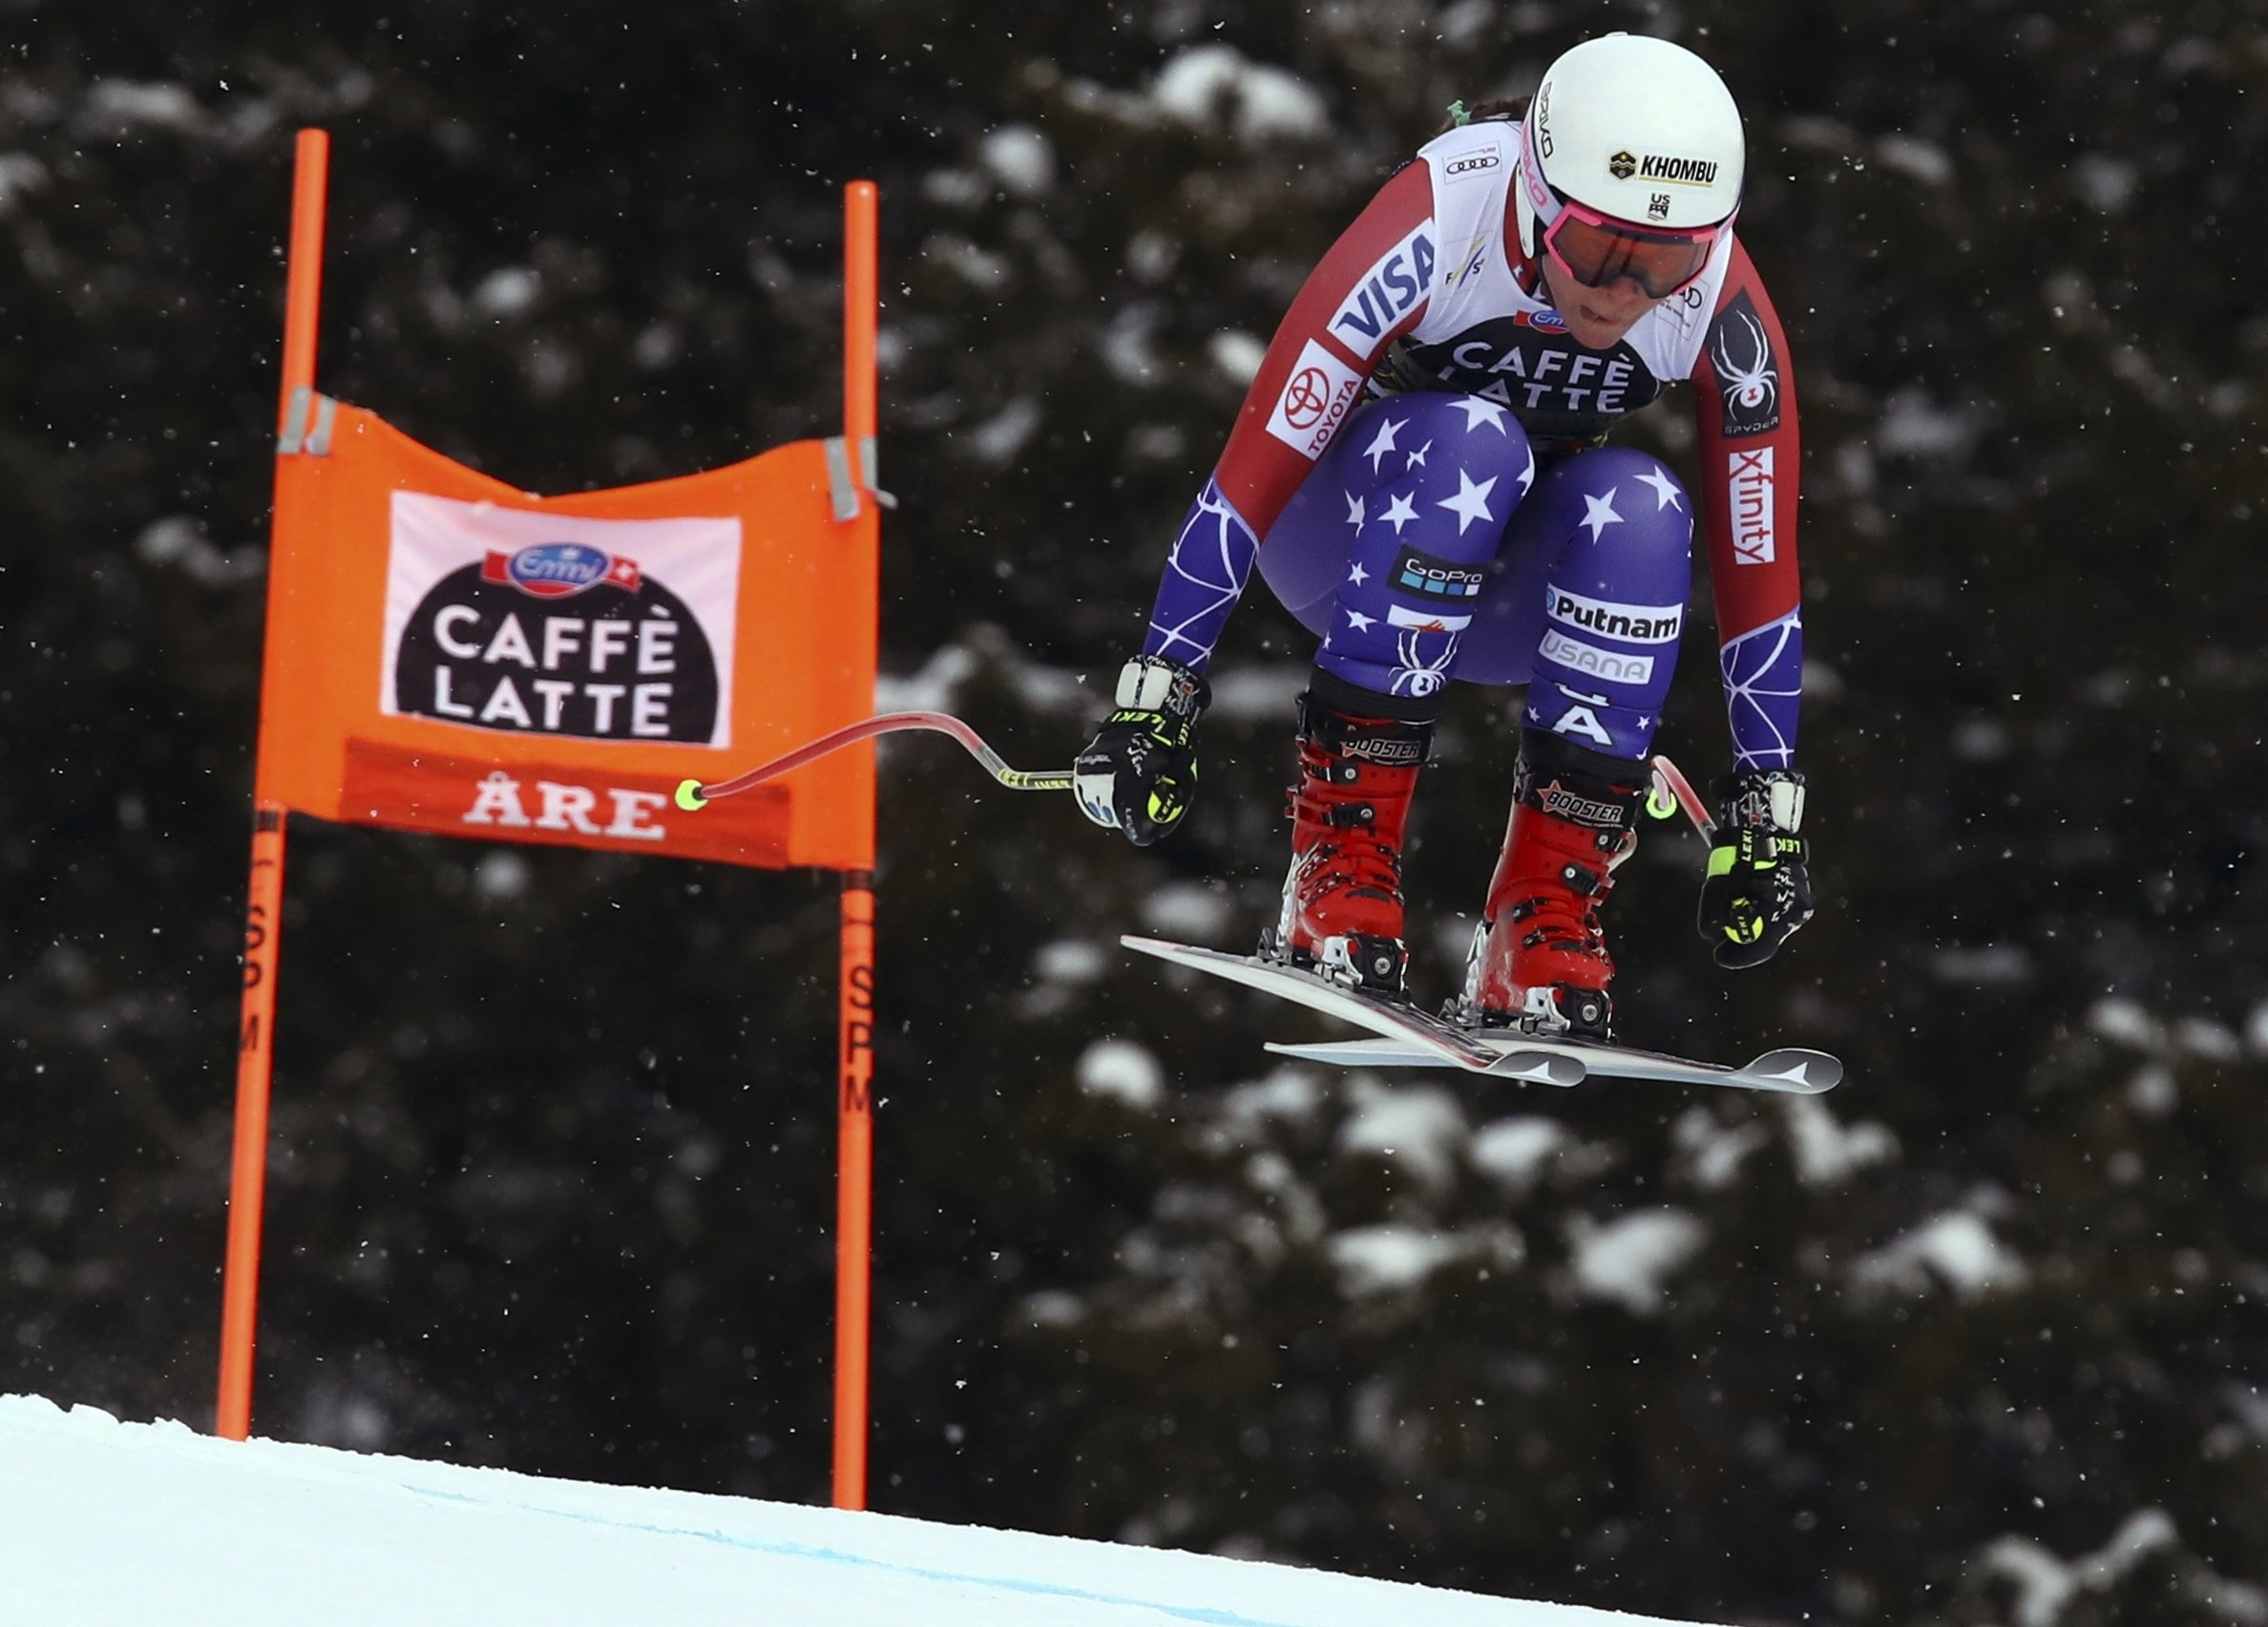 Downhill racer Breezy Johnson out for season with torn ACL